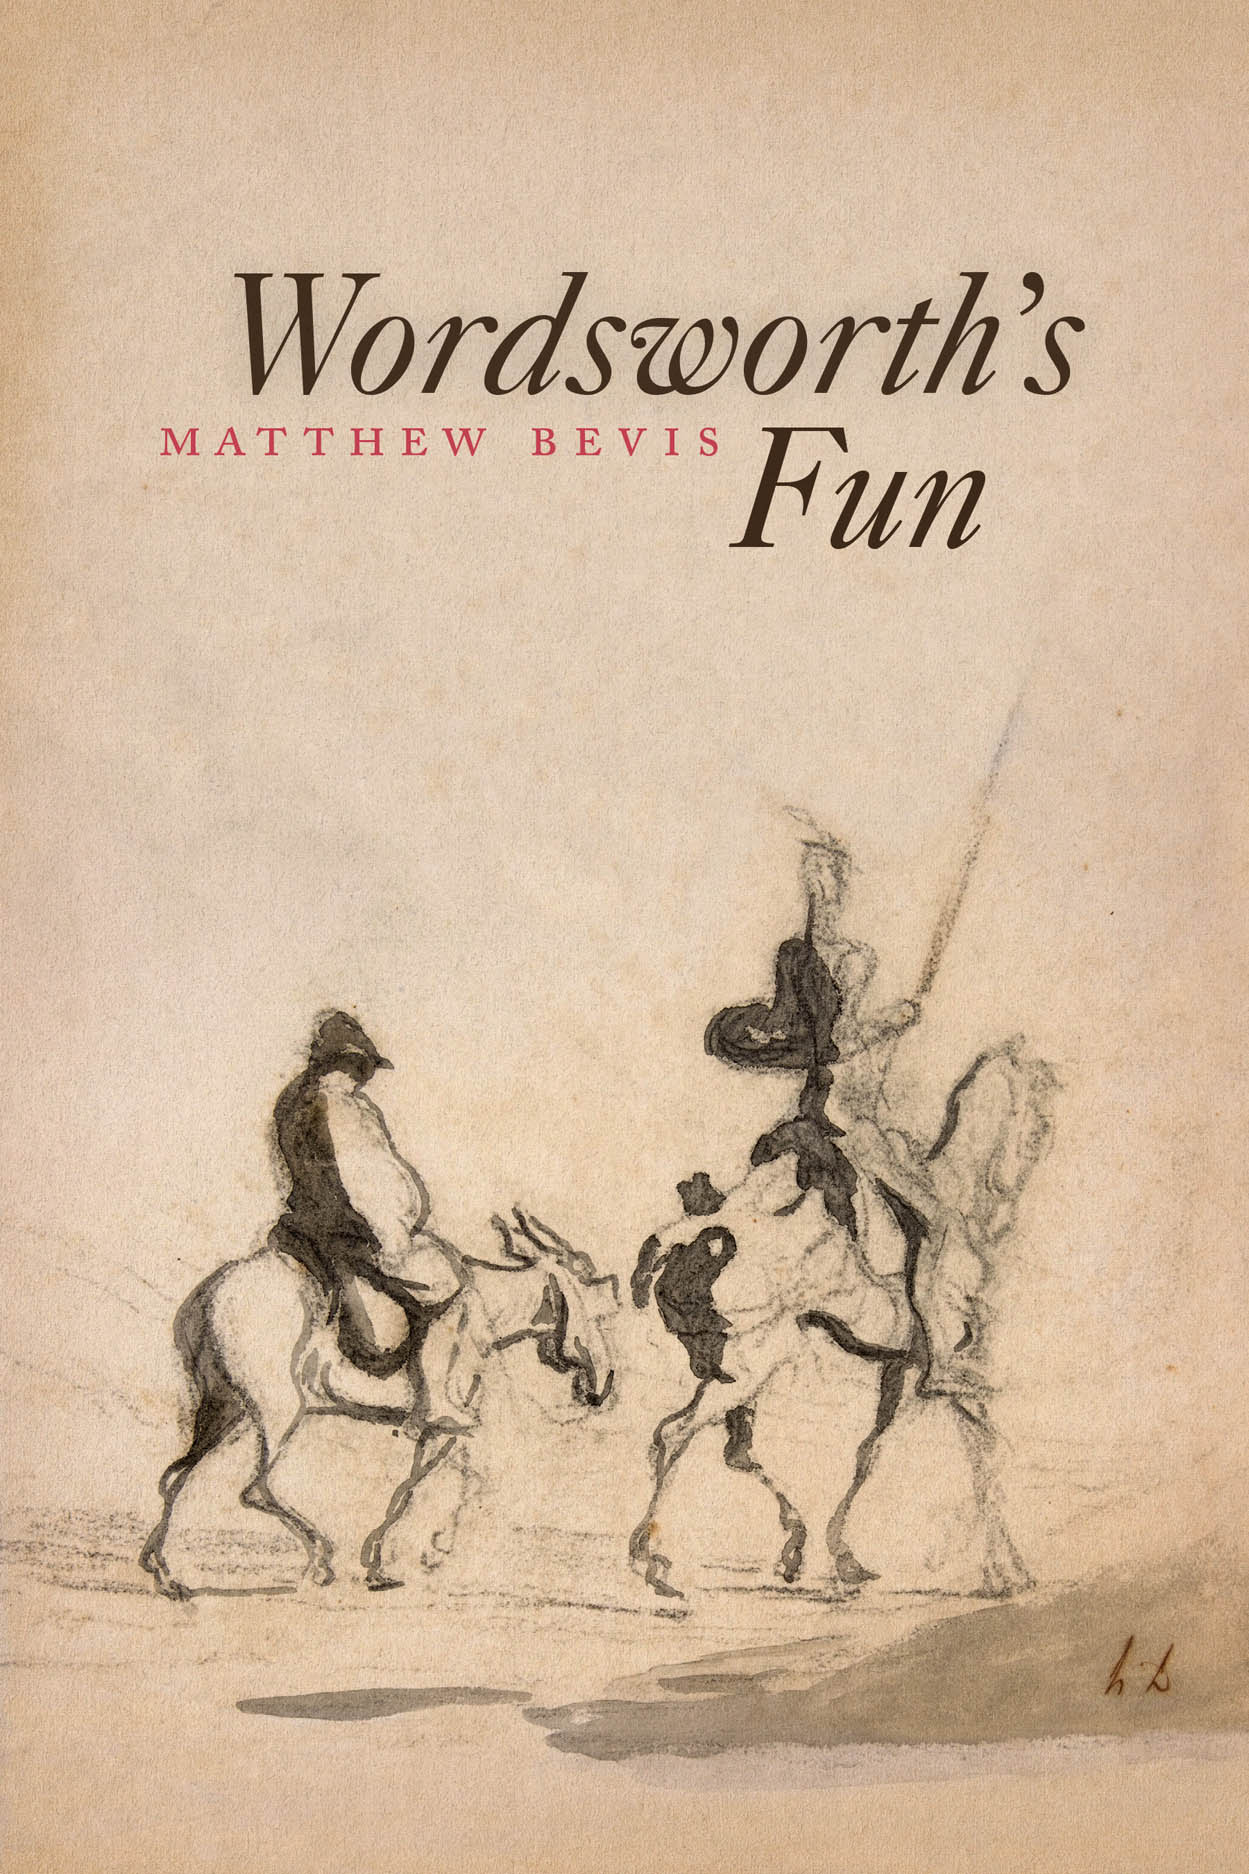 Wordsworth's Fun